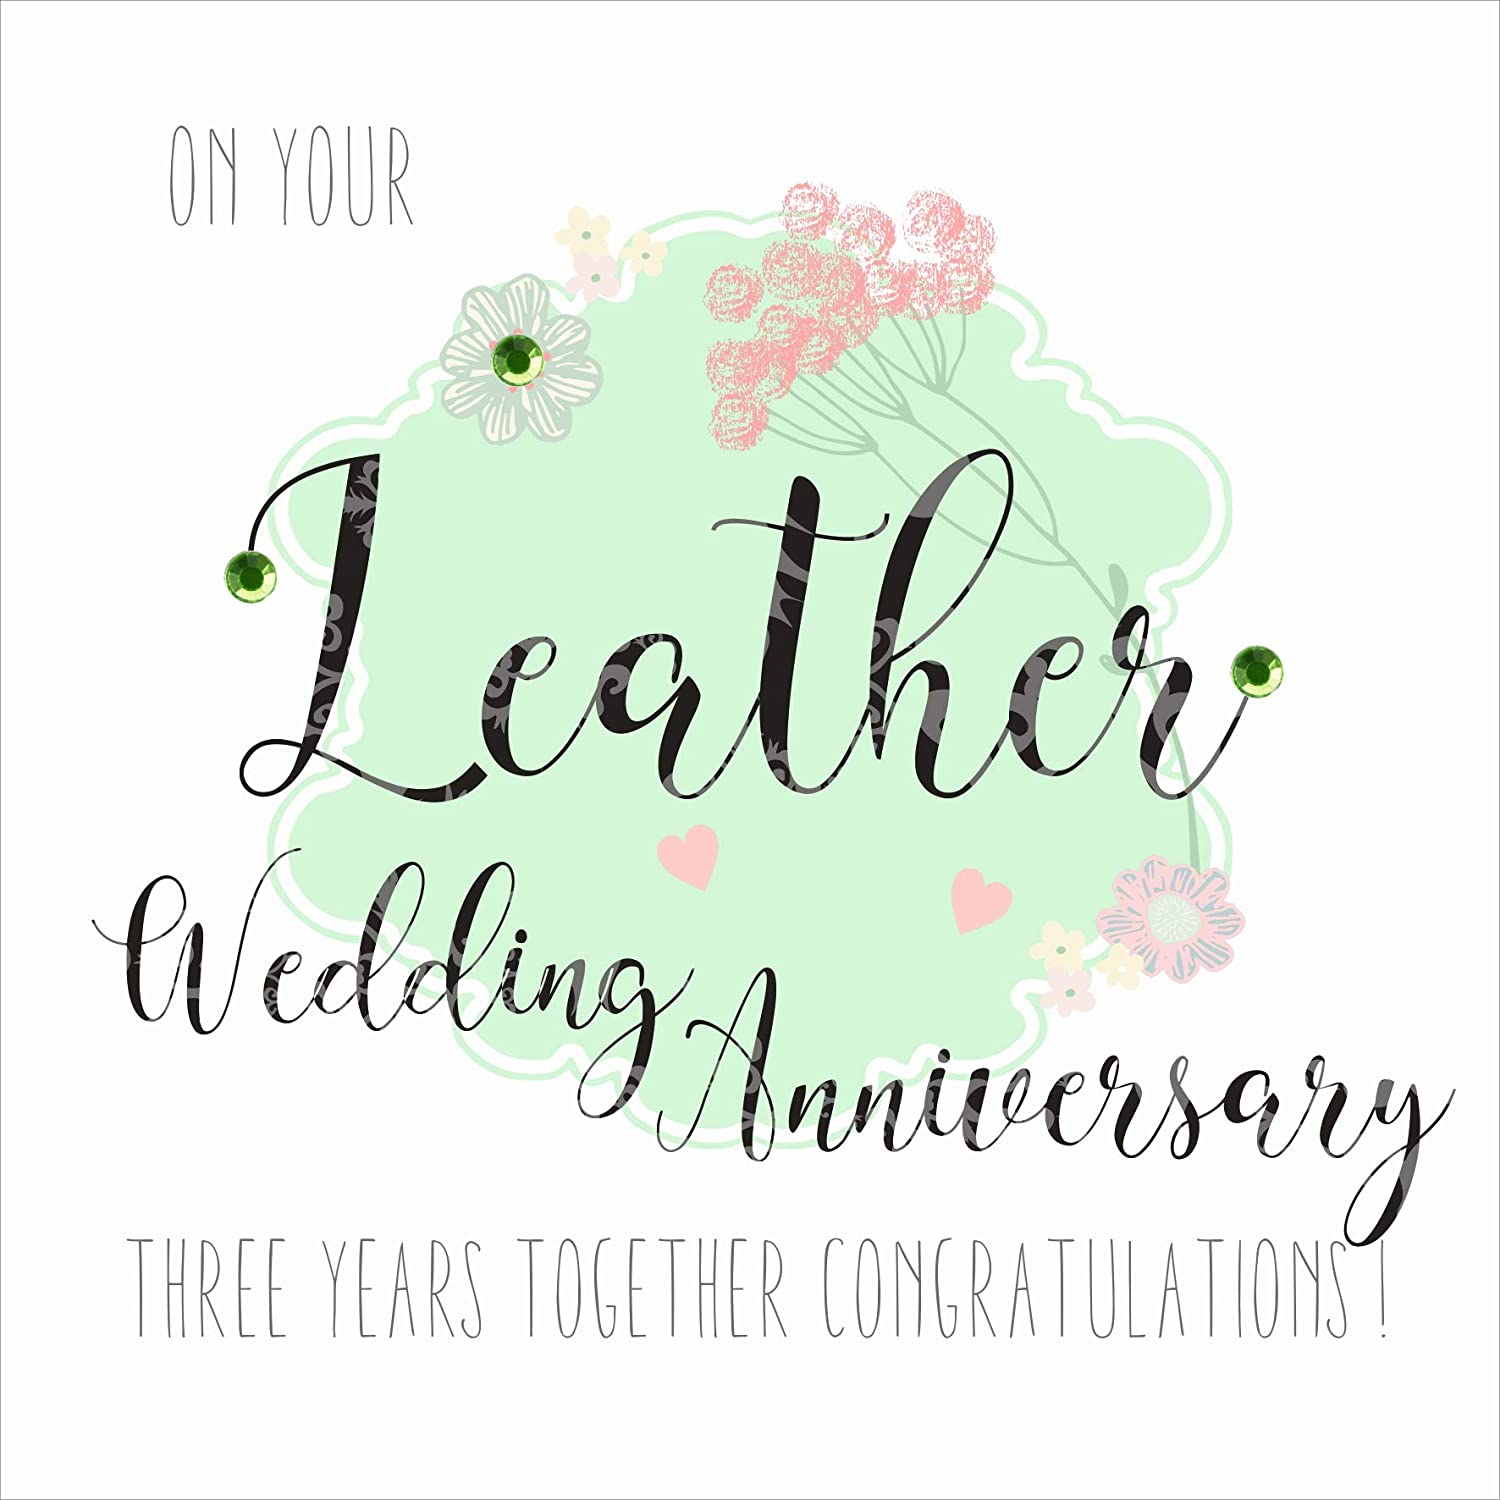 Handfinished Leather Anniversary Card with Crystals On Your Leather Wedding Anniversary 3 Years